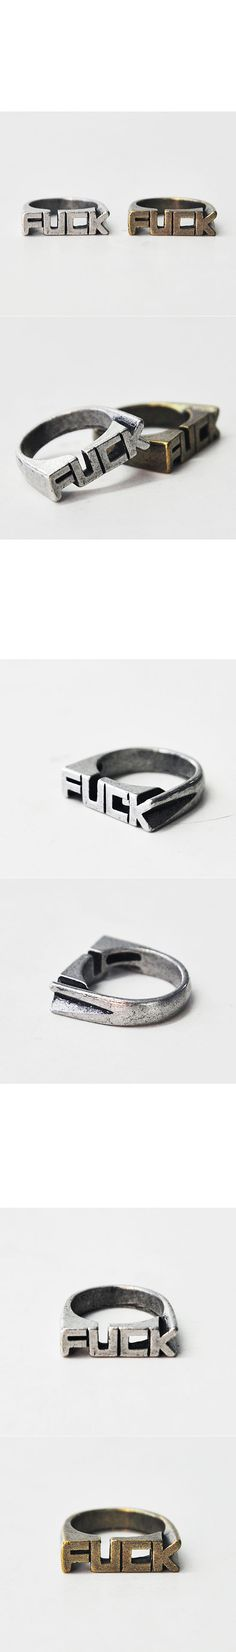 Accessories :: Rings :: Funky Rebellious Edge FUCK Ring-Ring 17 - Mens Fashion Clothing For An Attractive Guy Look